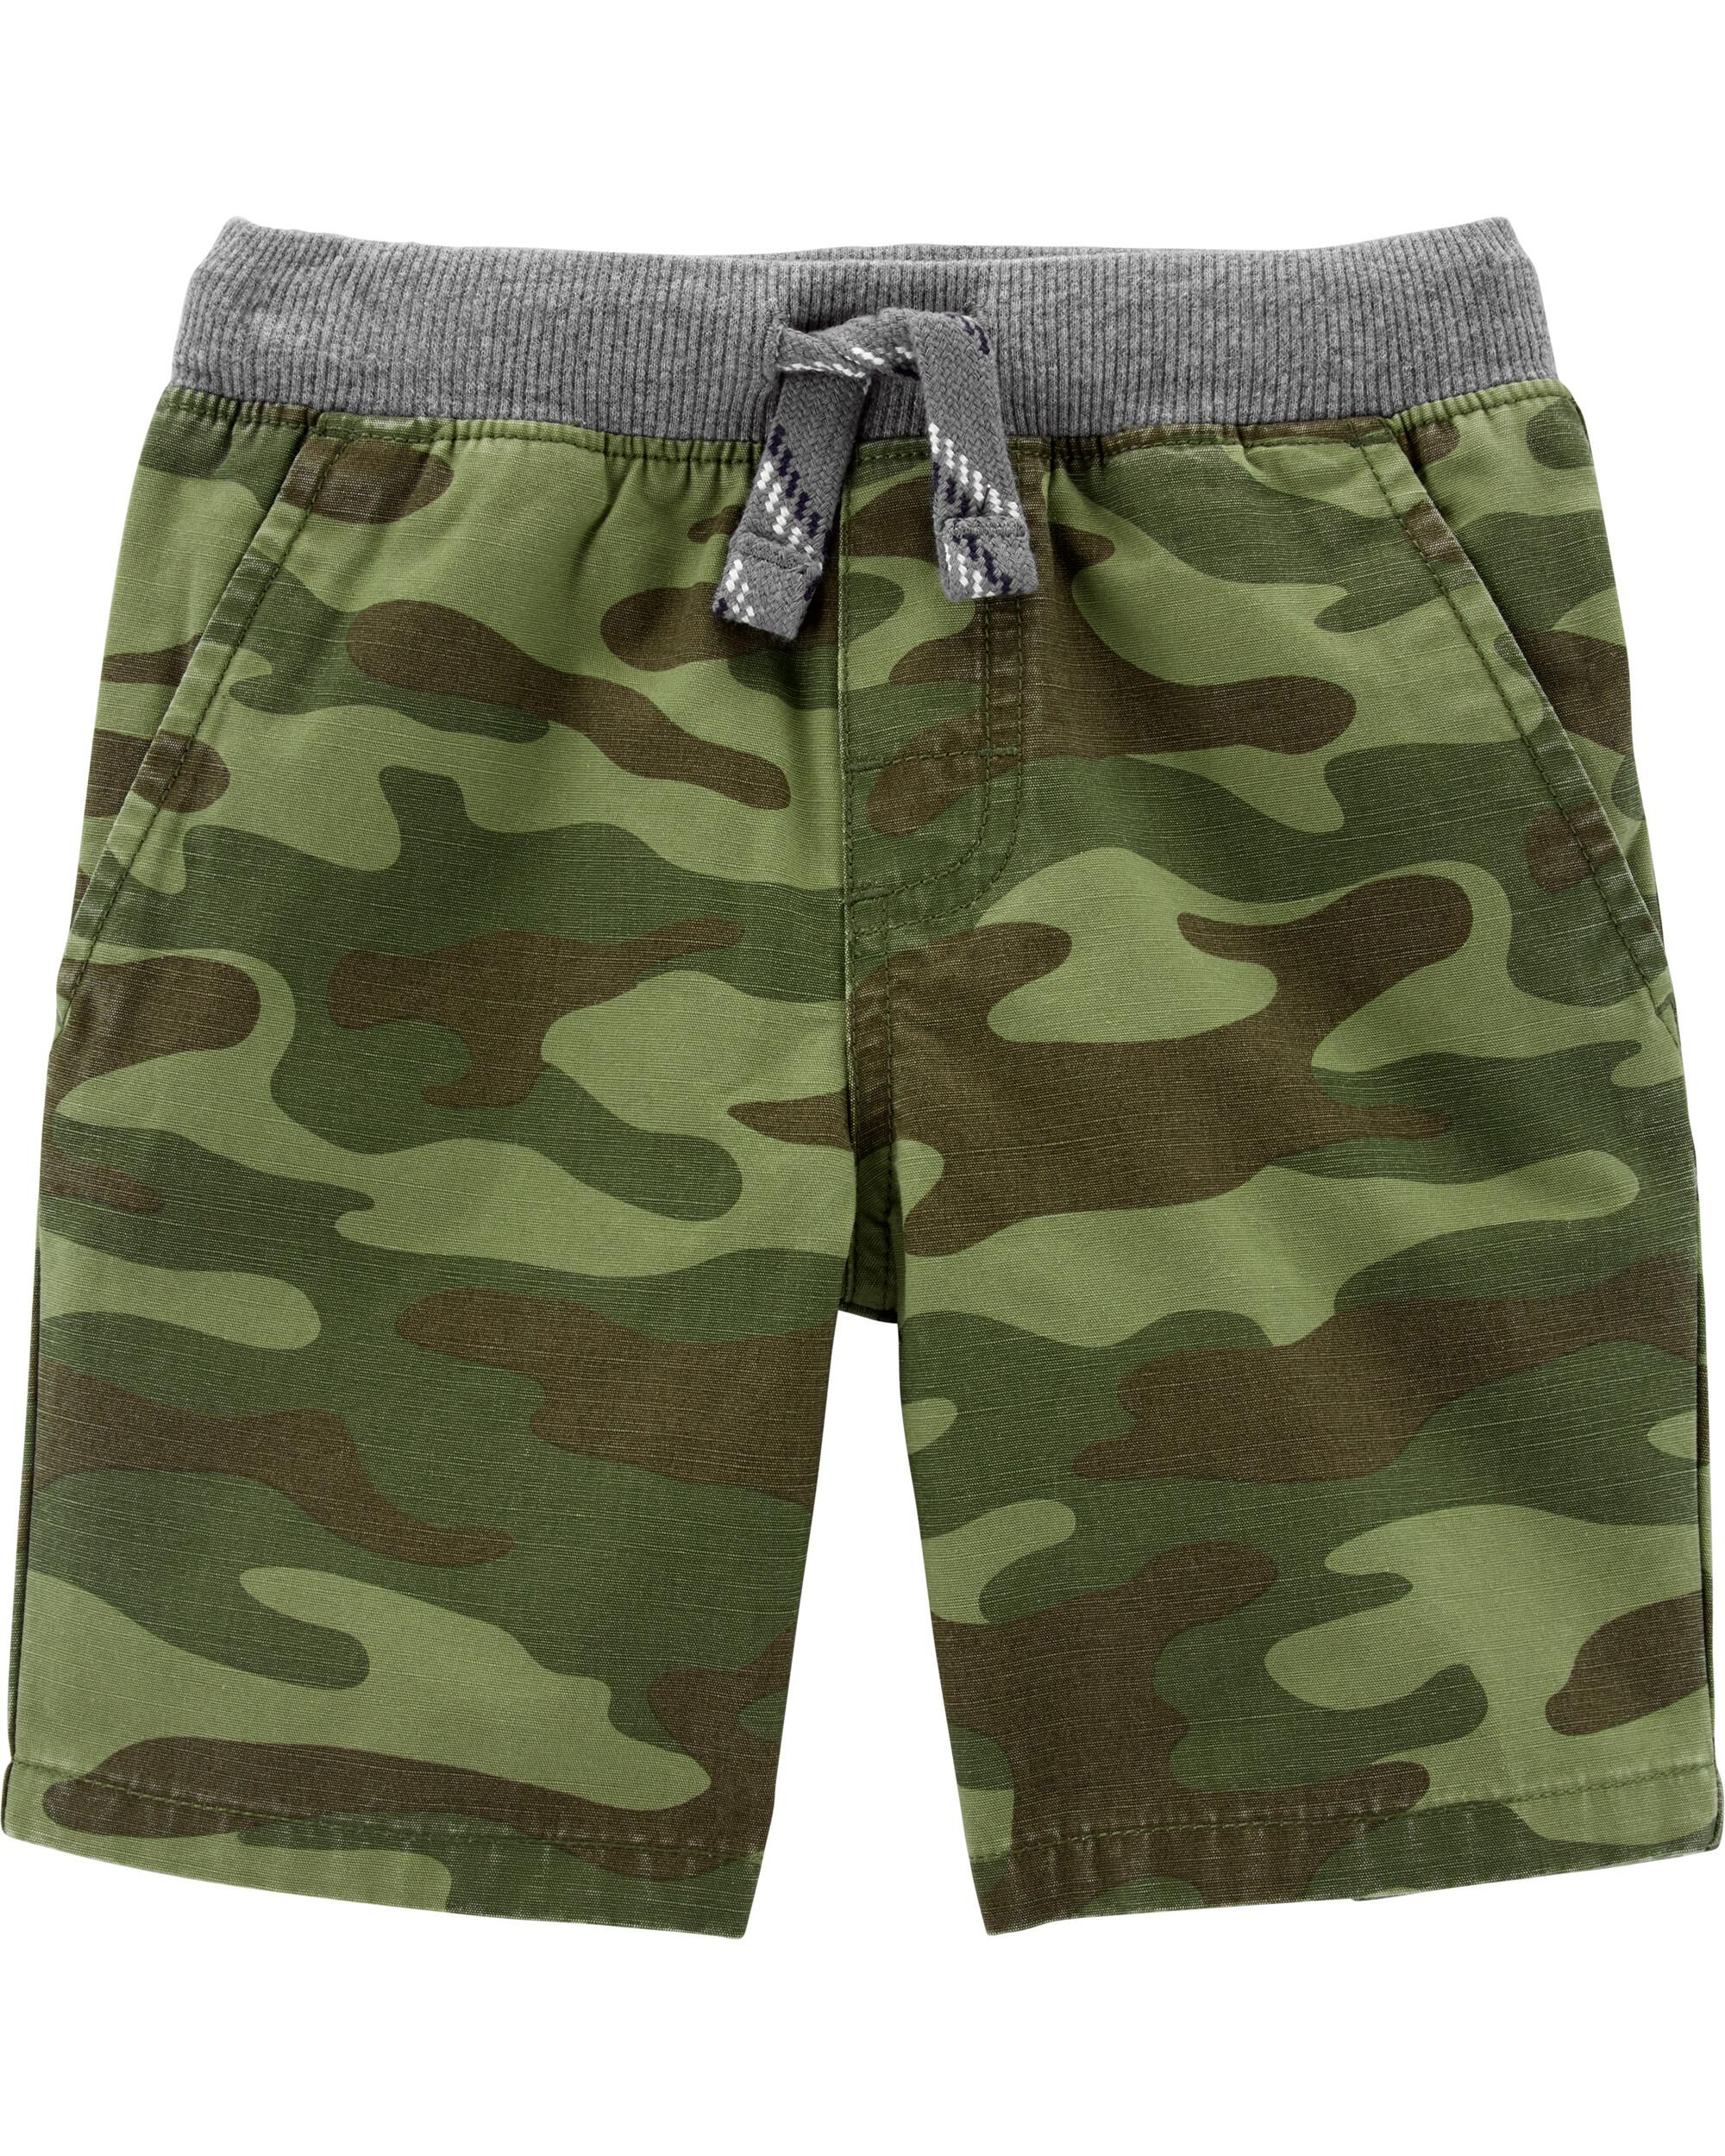 *Clearance*  Camo Easy Pull-On Dock Shorts